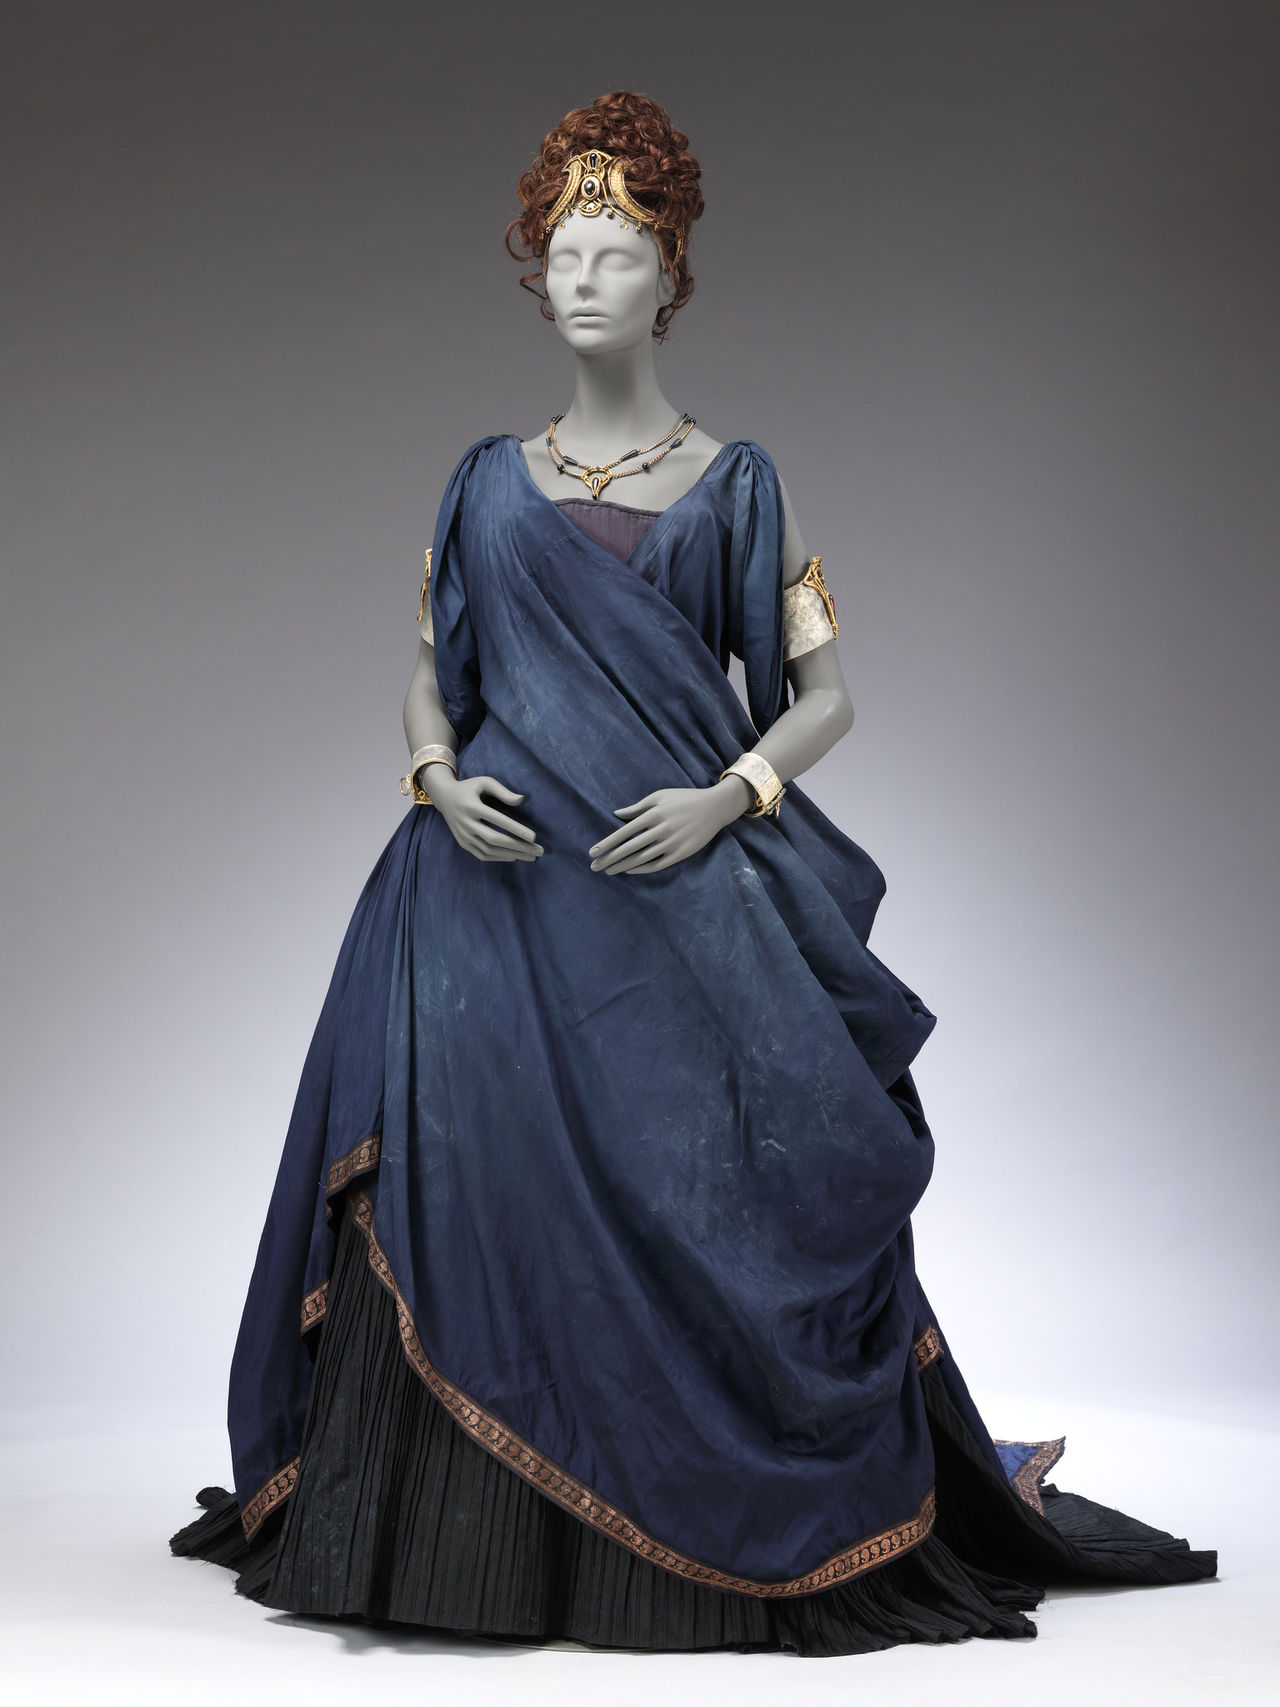 Long blue dress on a grey mannequin. The dress has many folds and a long train.